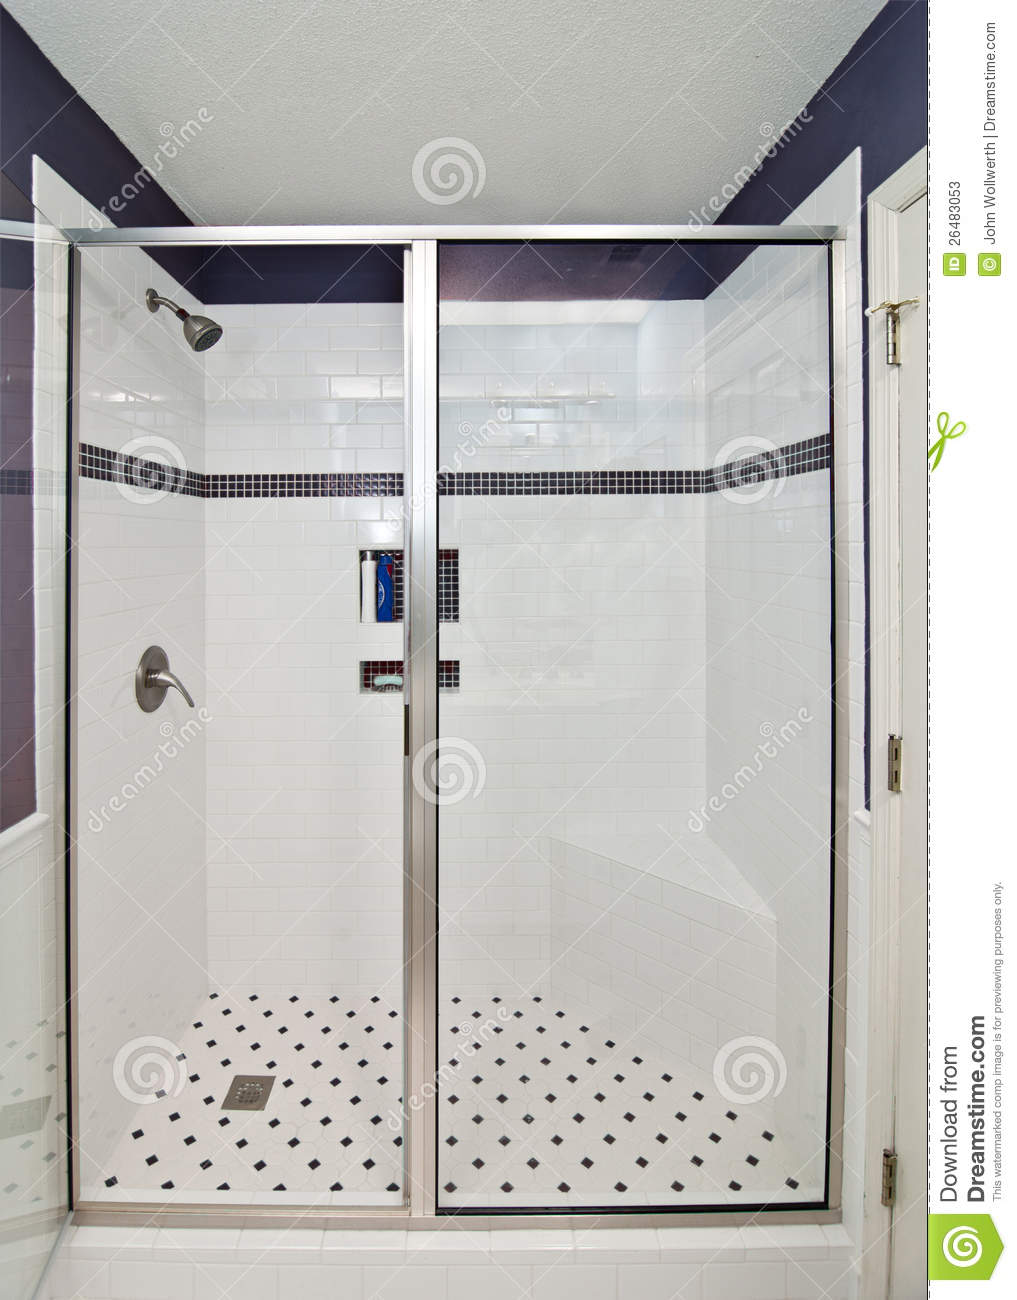 Douche moderne l gante photos stock image 26483053 - Moderne douche fotos ...